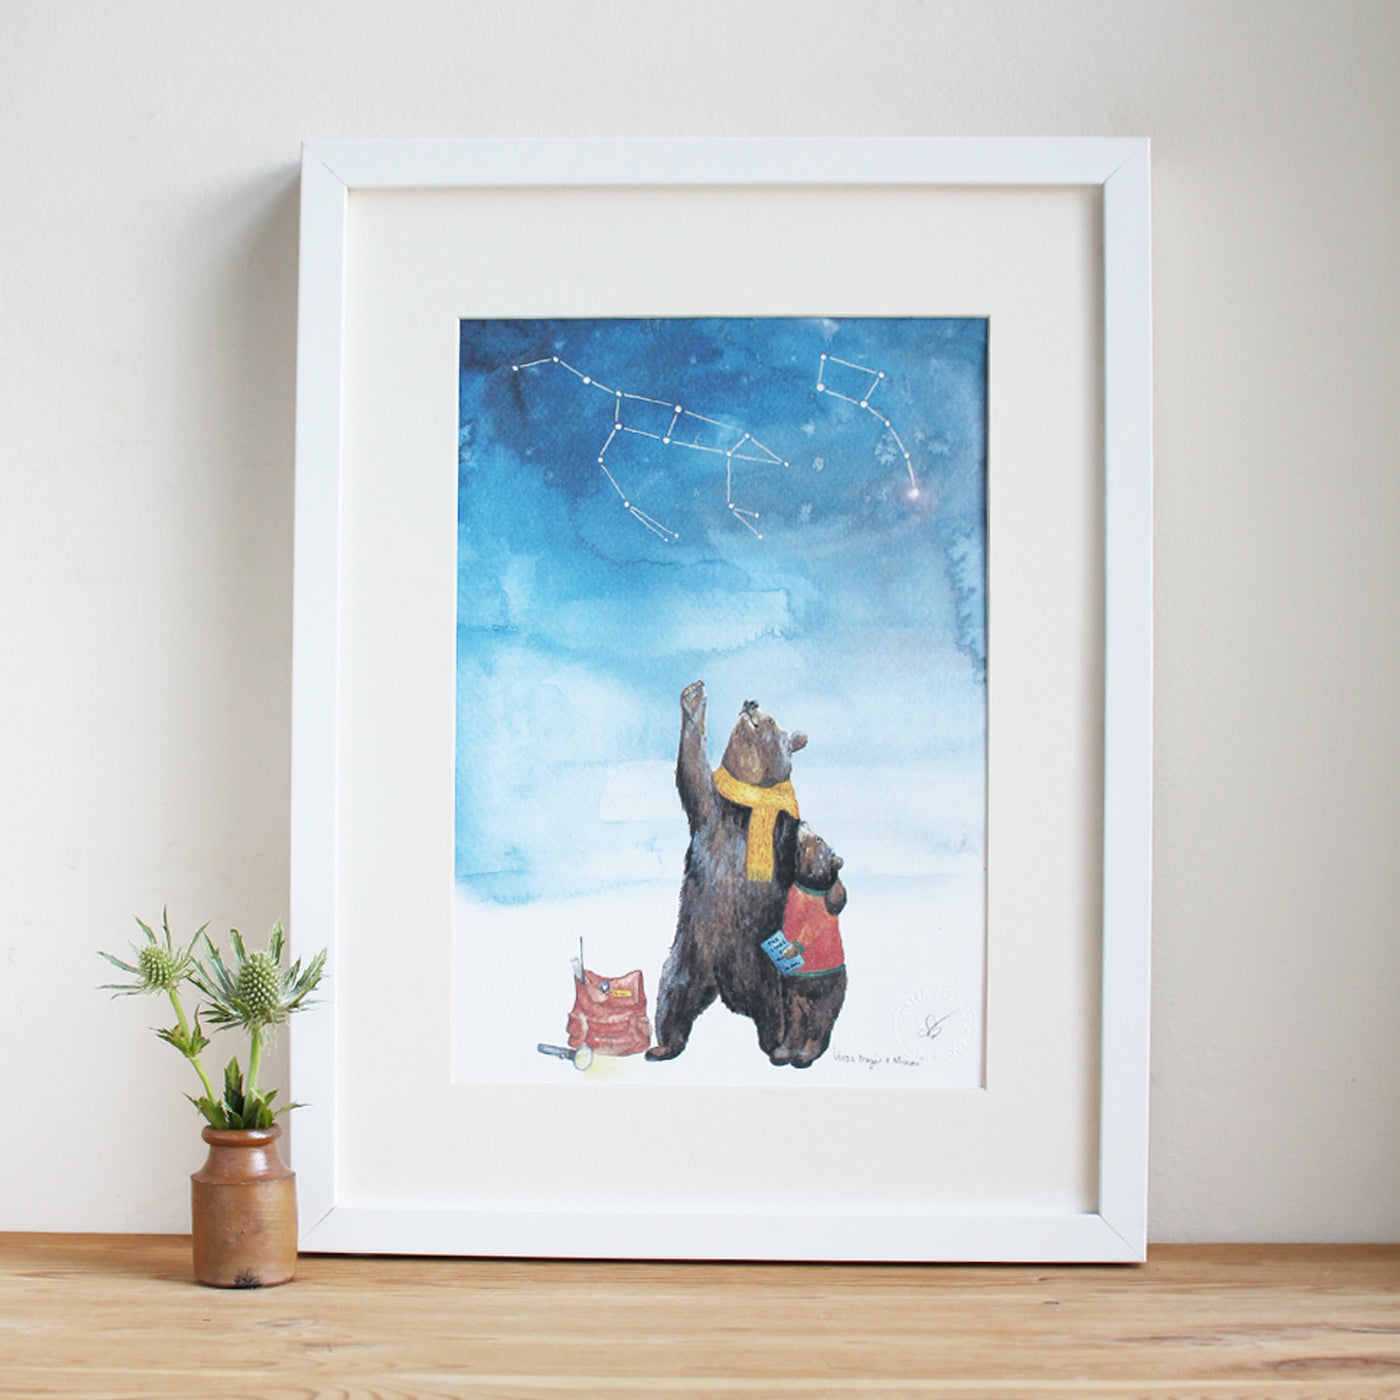 A3 URSA Major & Minor Art Prints